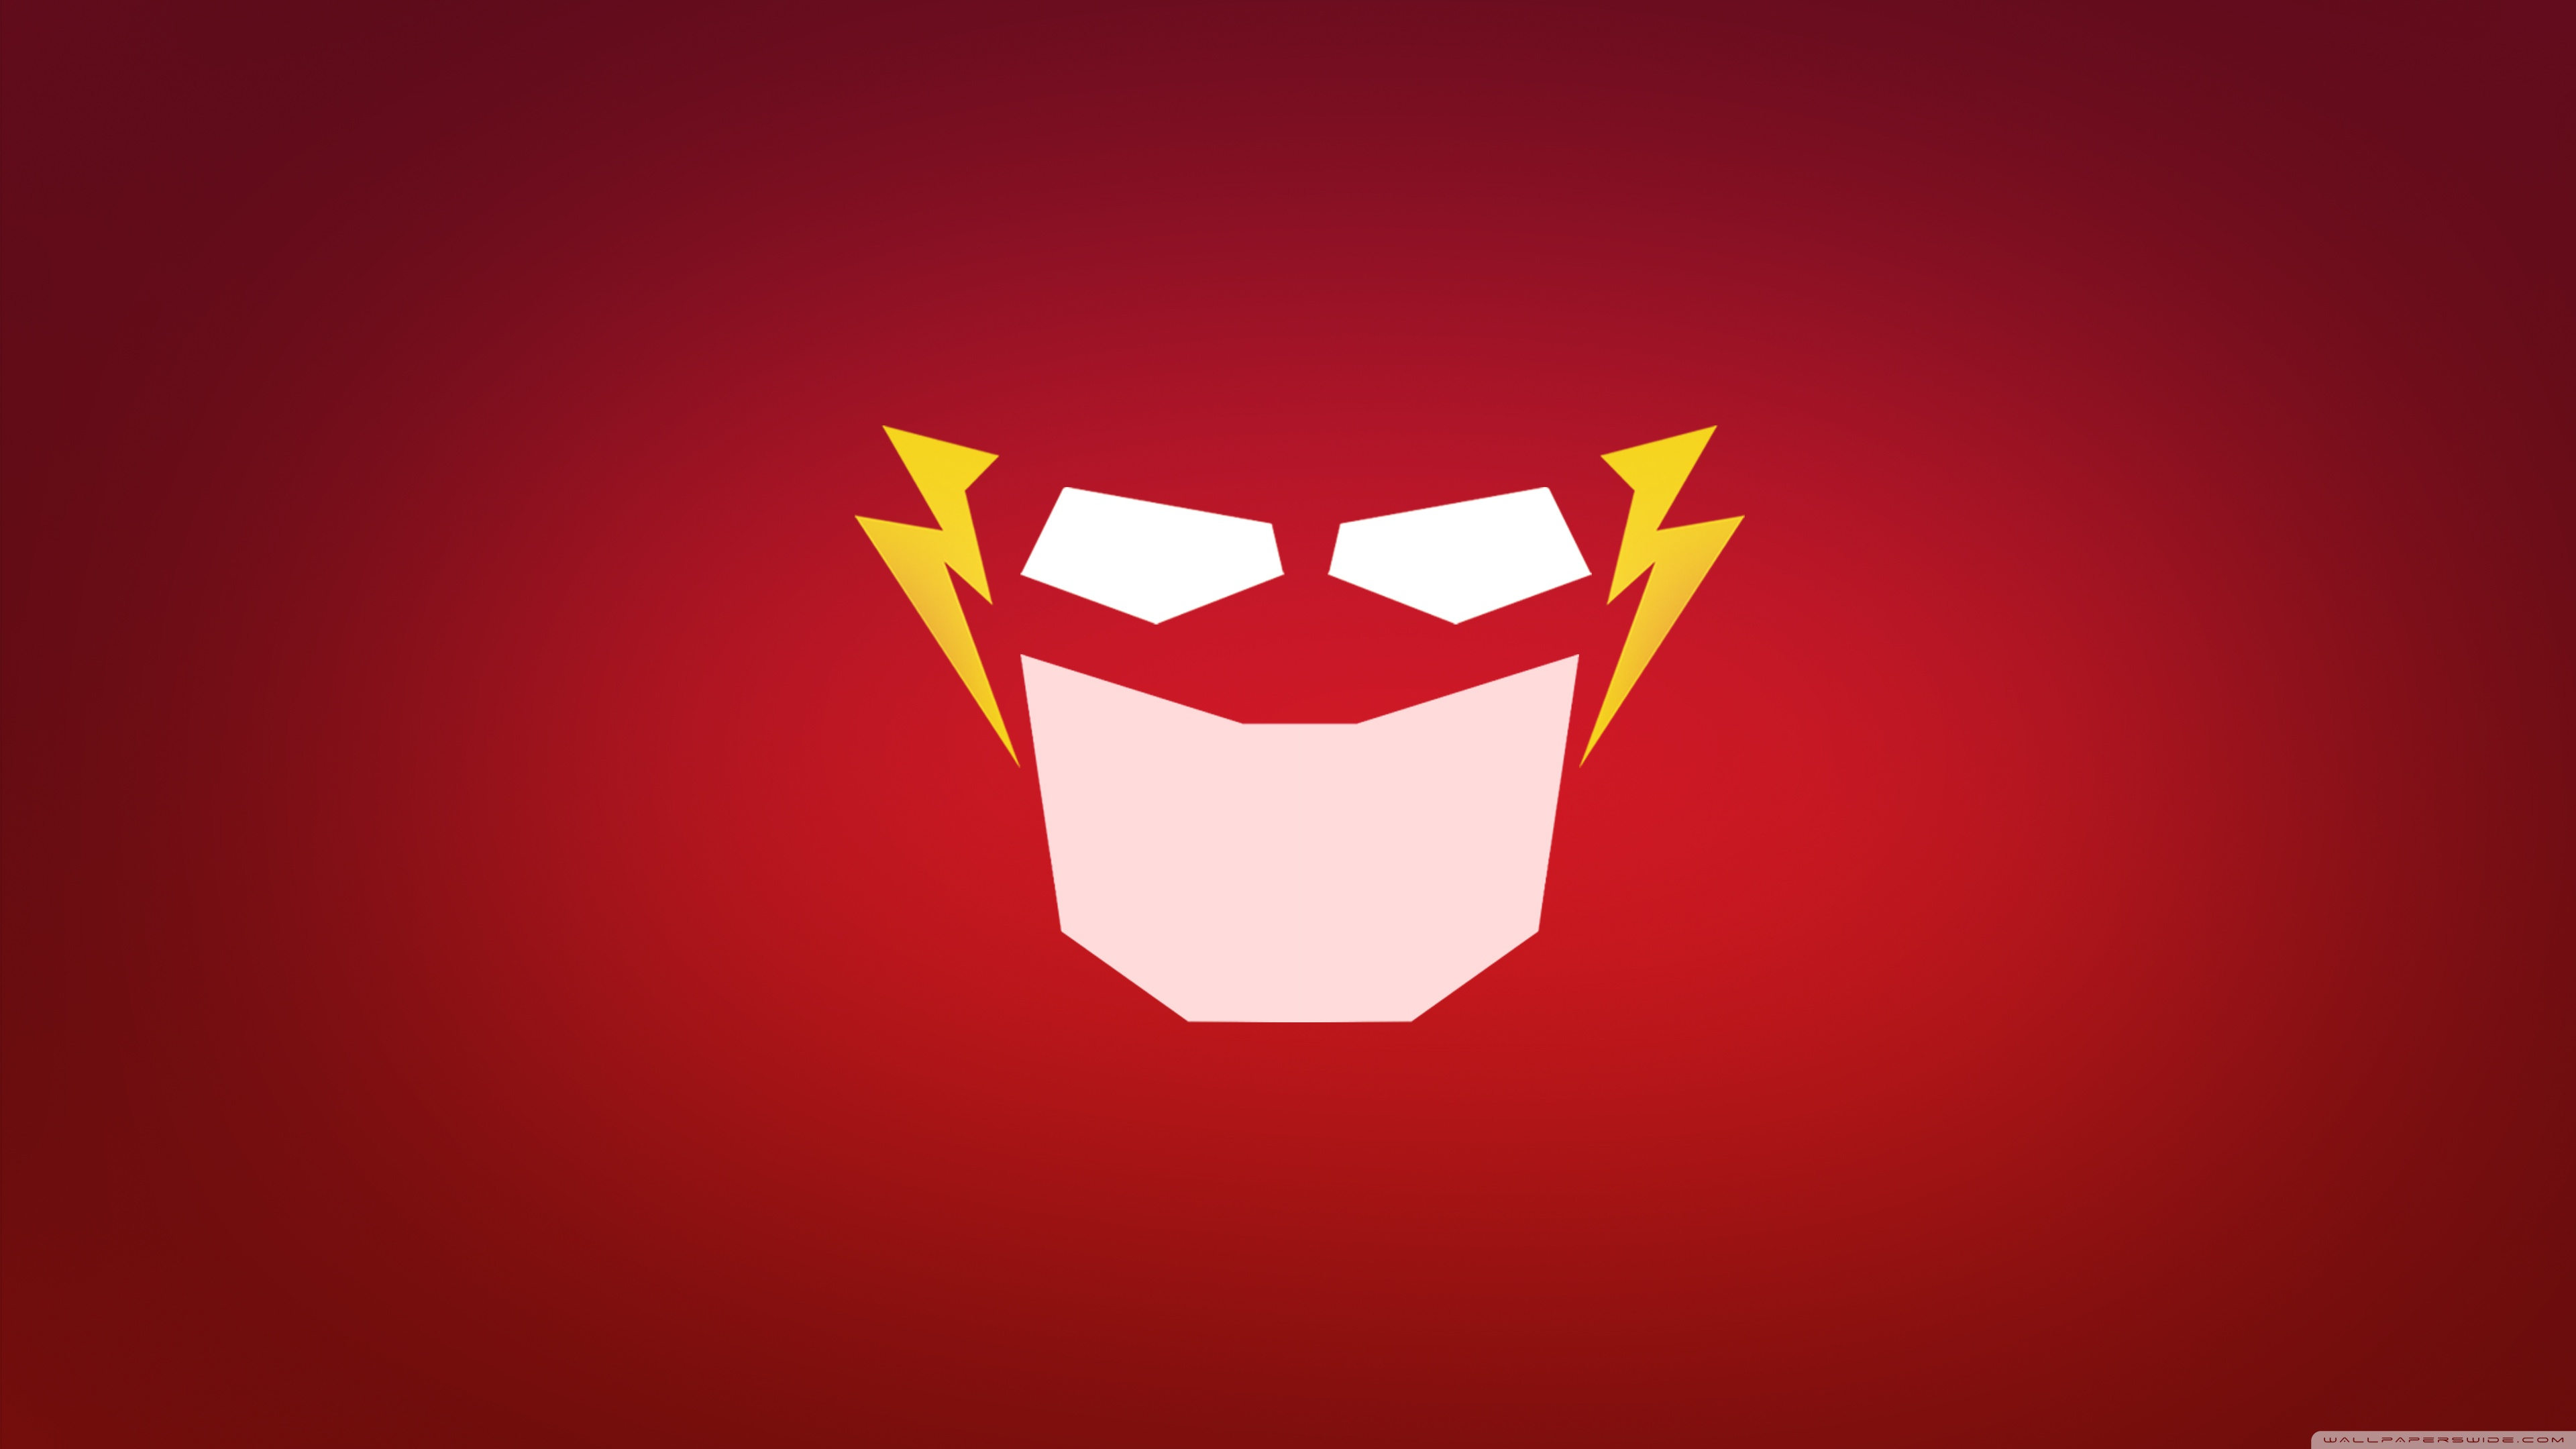 The Flash iPhone Wallpaper - WallpaperSafari